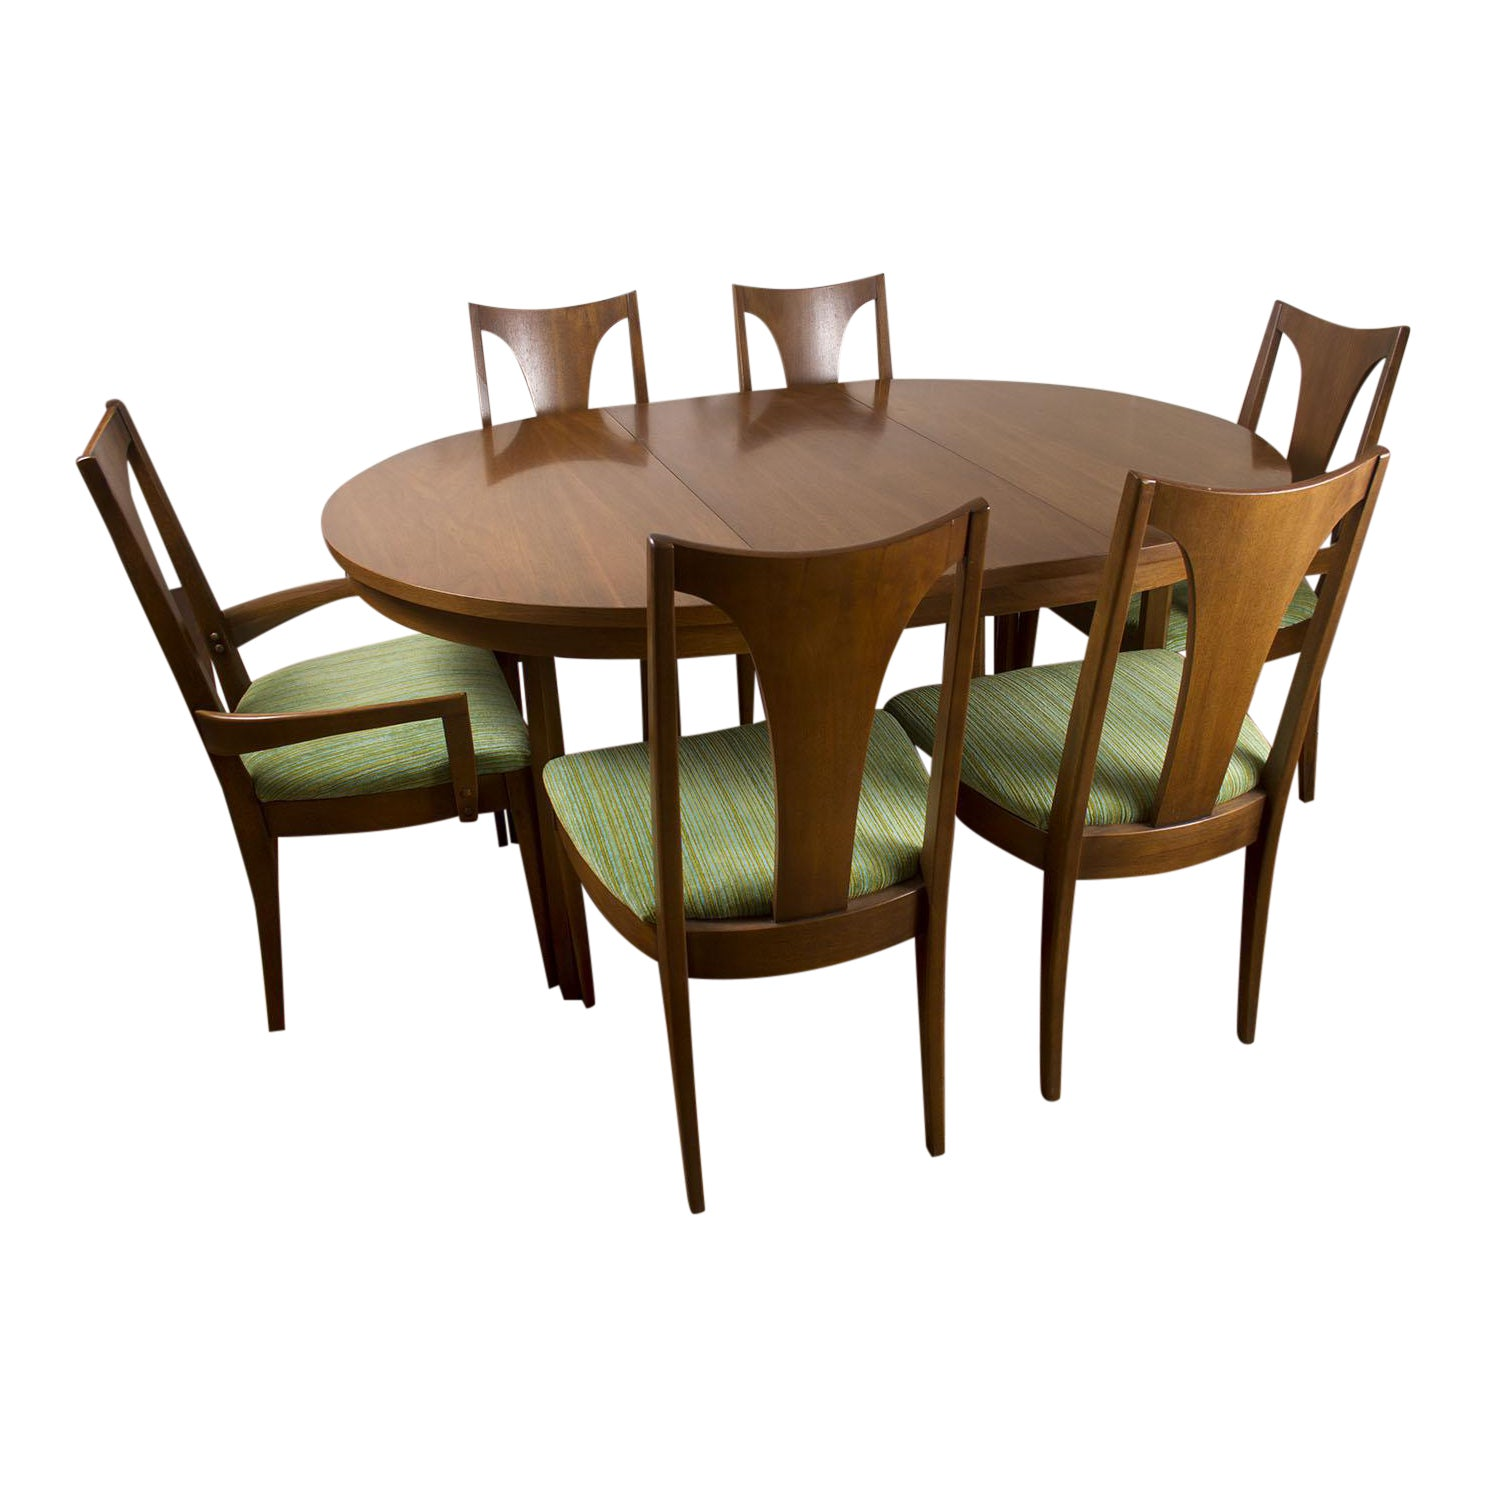 Kitchen Table And Chairs Ireland: Vintage Mid Century Modern Broyhill Emphasis Walnut Round